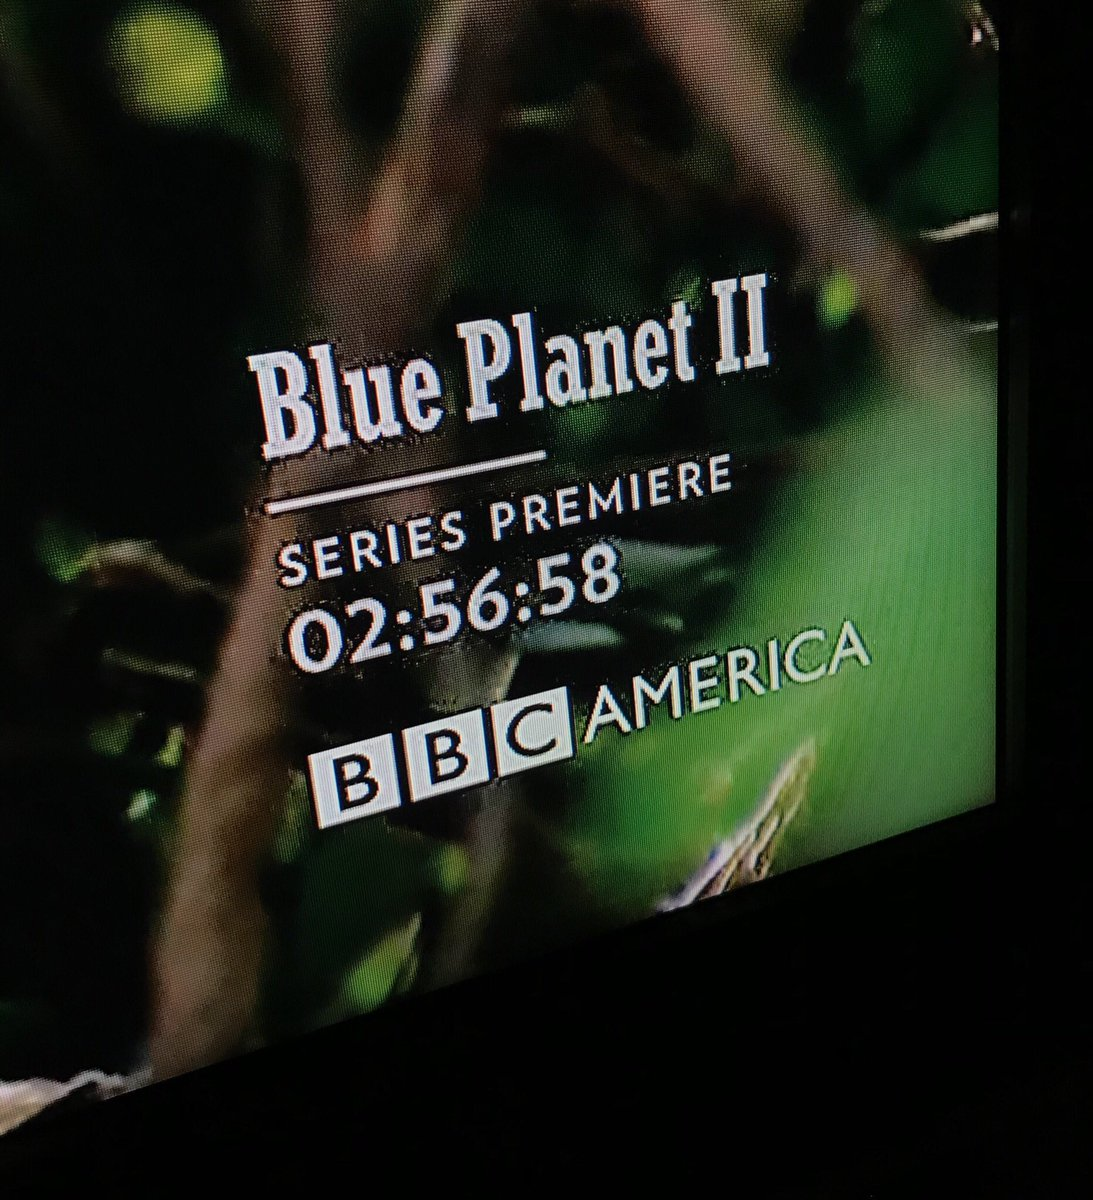 Tonight's countdown clock. This time, something good happens at zero. #BluePlanet2 https://t.co/OzH4En2Ssa